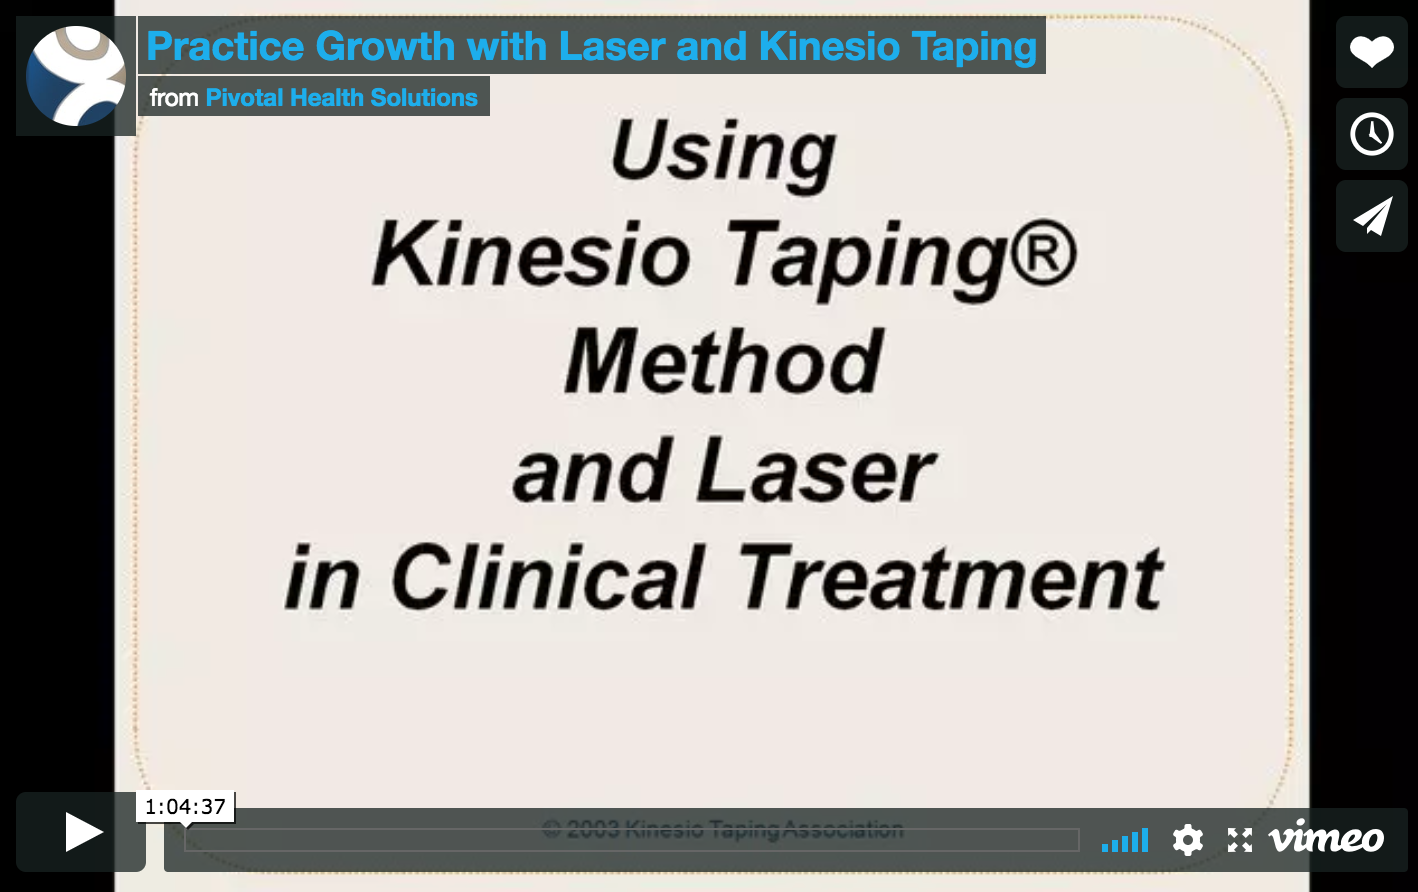 Laser and Kinesio Taping